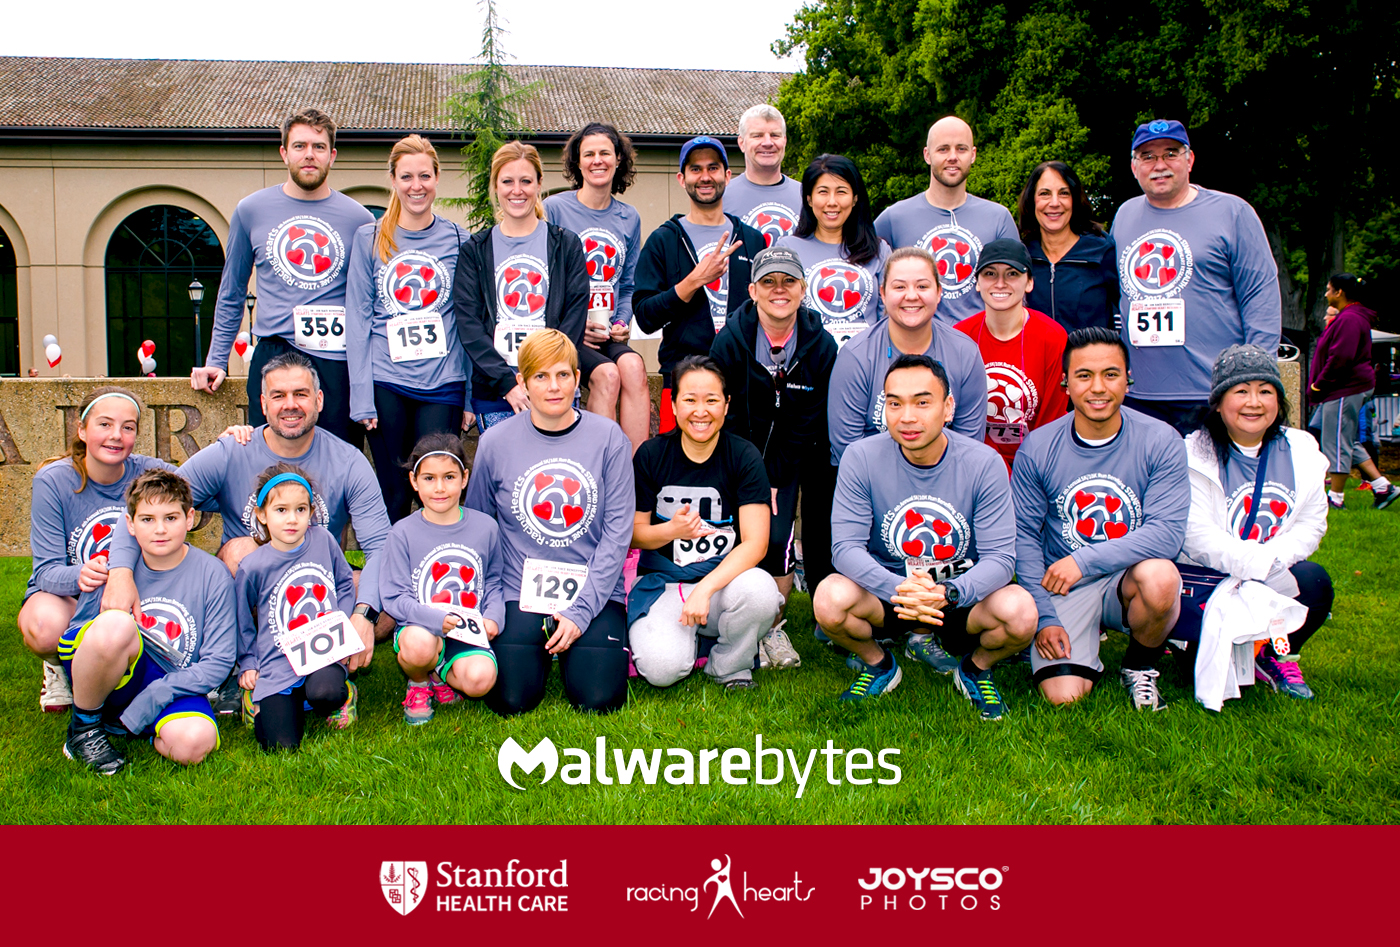 Team Malwarebytes Rocks!